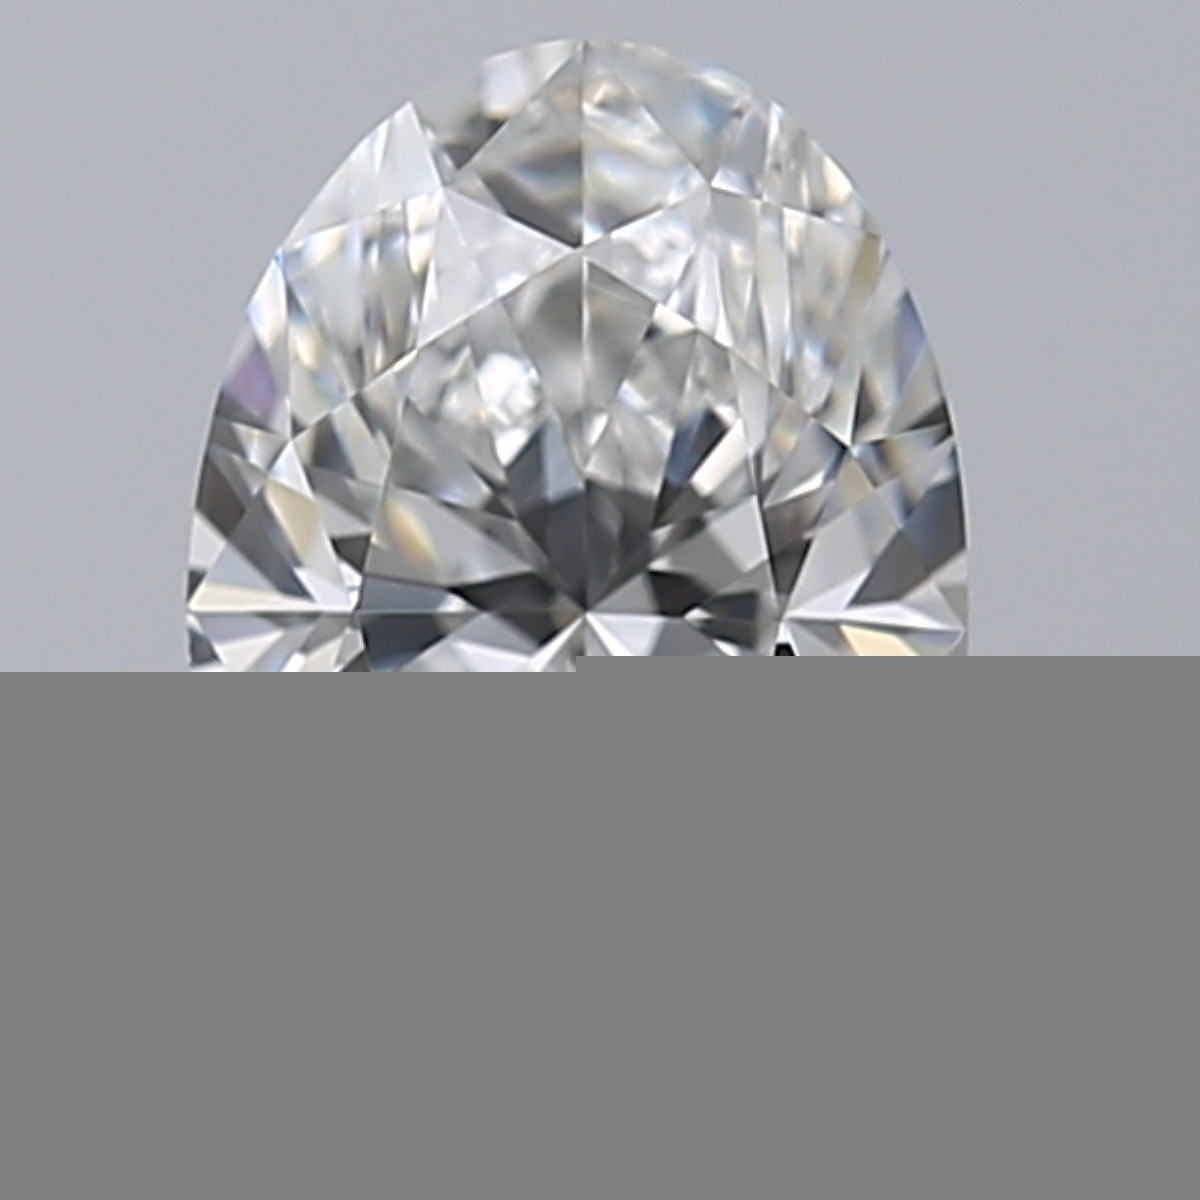 0.90 Carat Oval Diamond (F/VVS1)